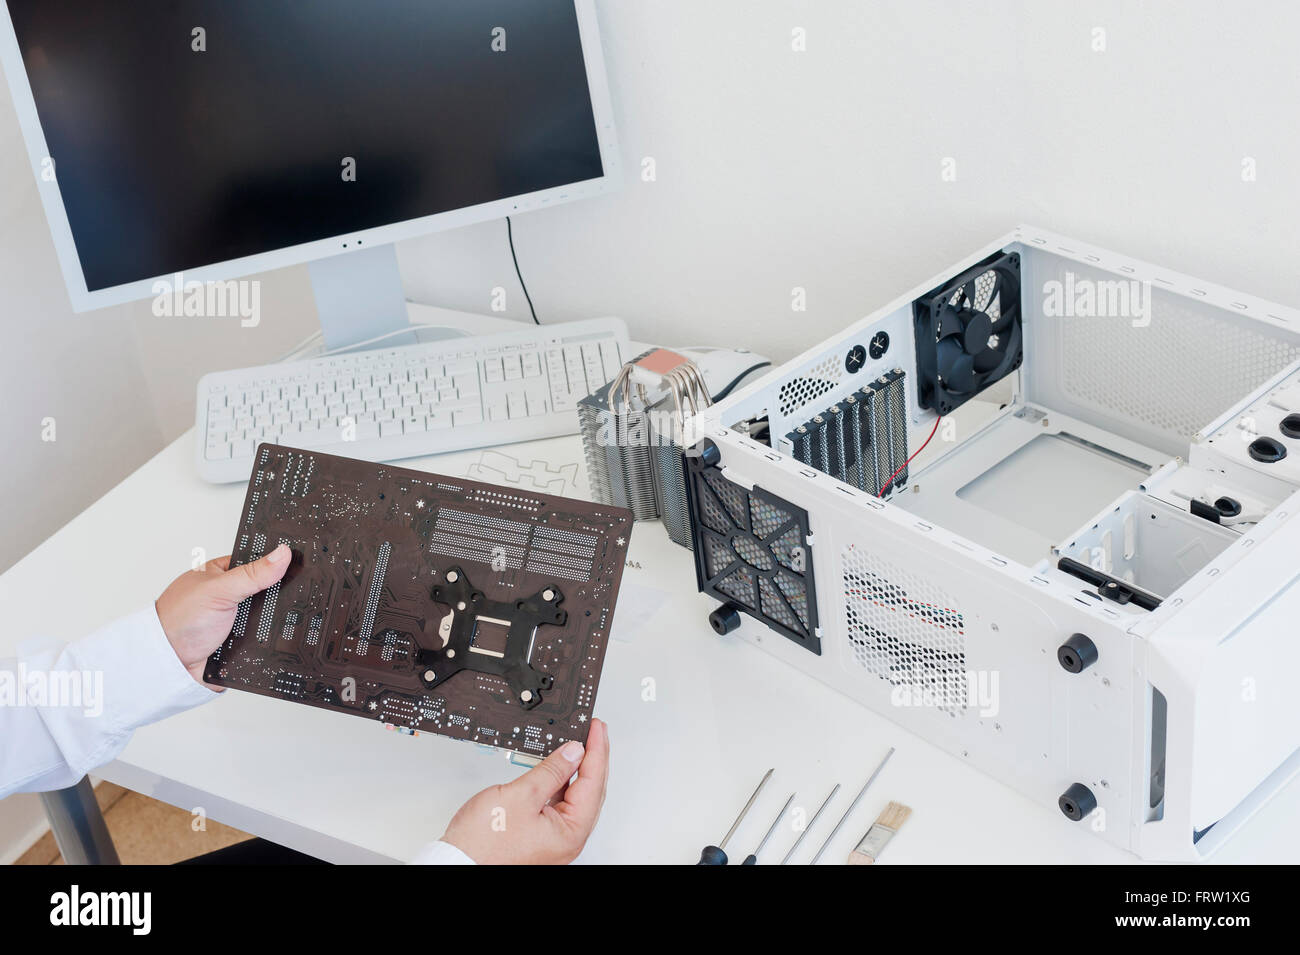 Assembling of a personal computer - Stock Image